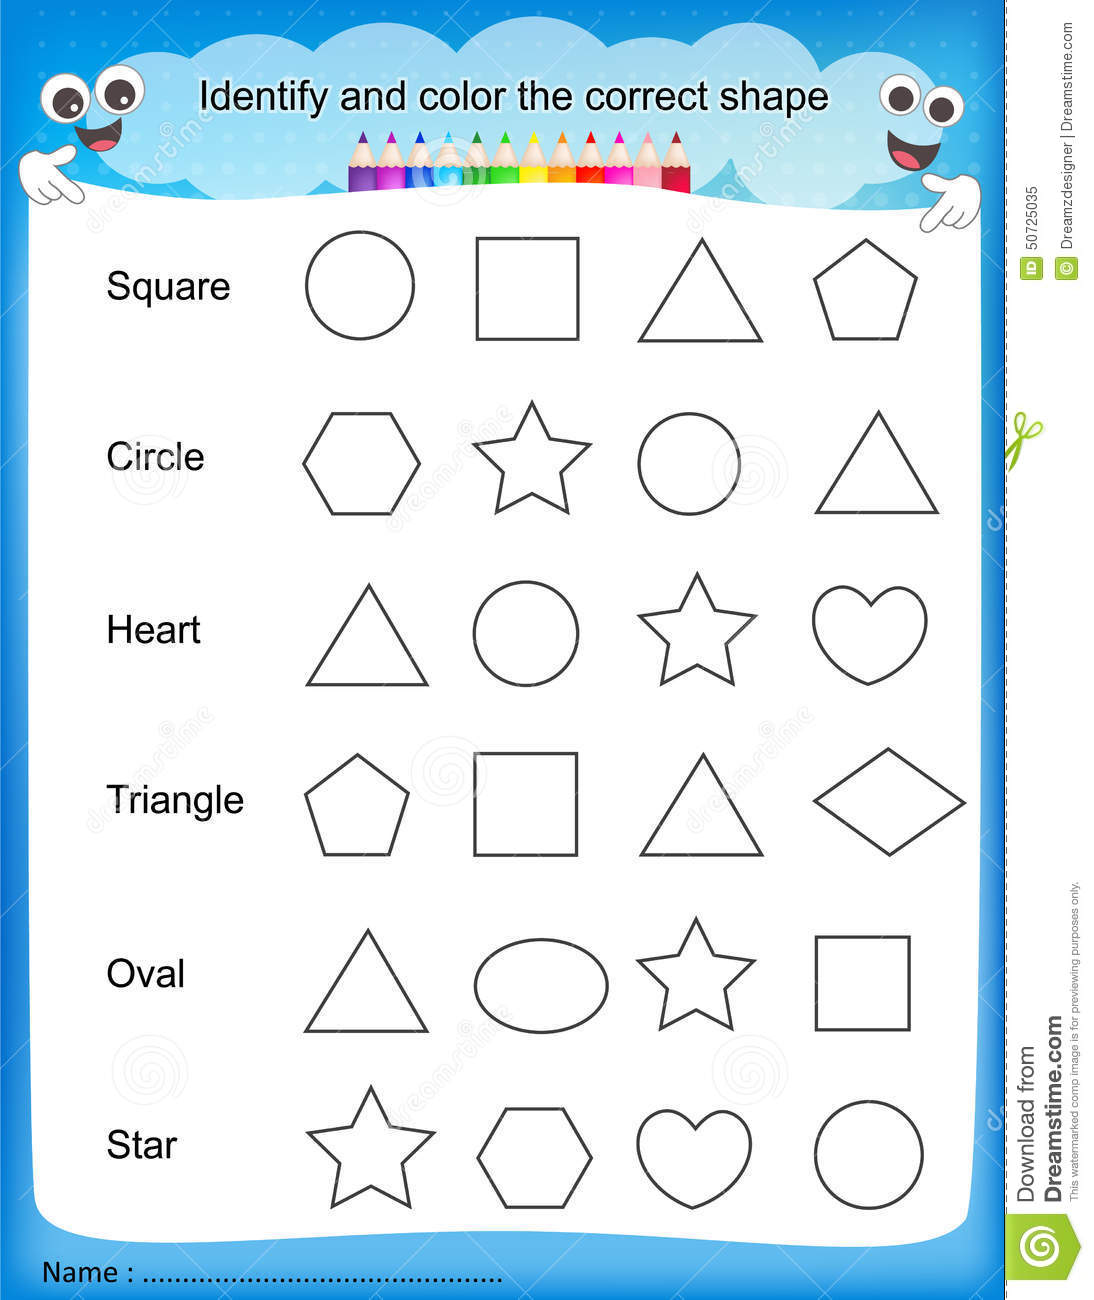 Digraph Worksheets For Kindergarten – Free Download Worksheets for Kindergarten